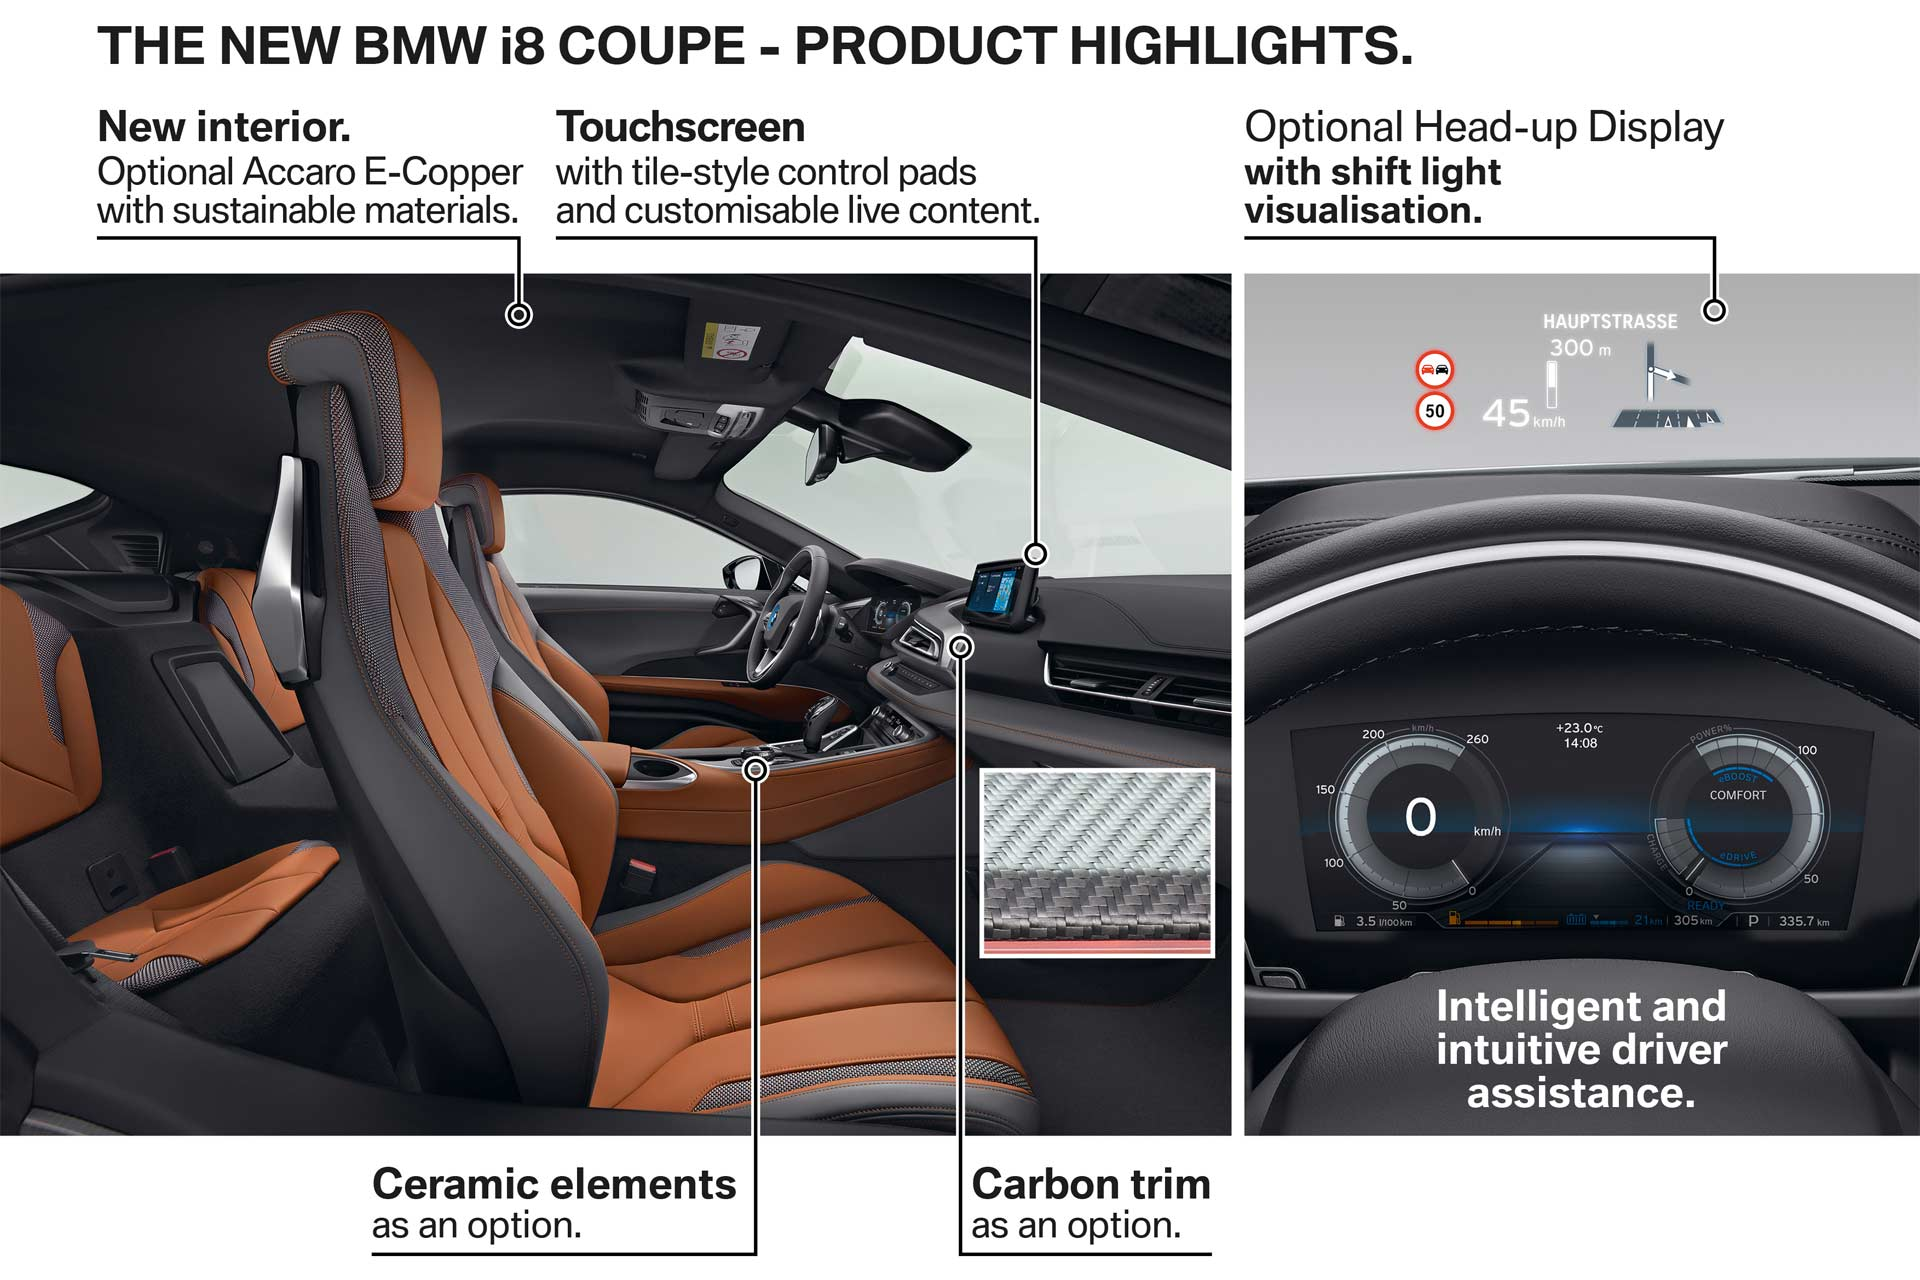 2018-BMW-i8-Coupe-product-highlights_3